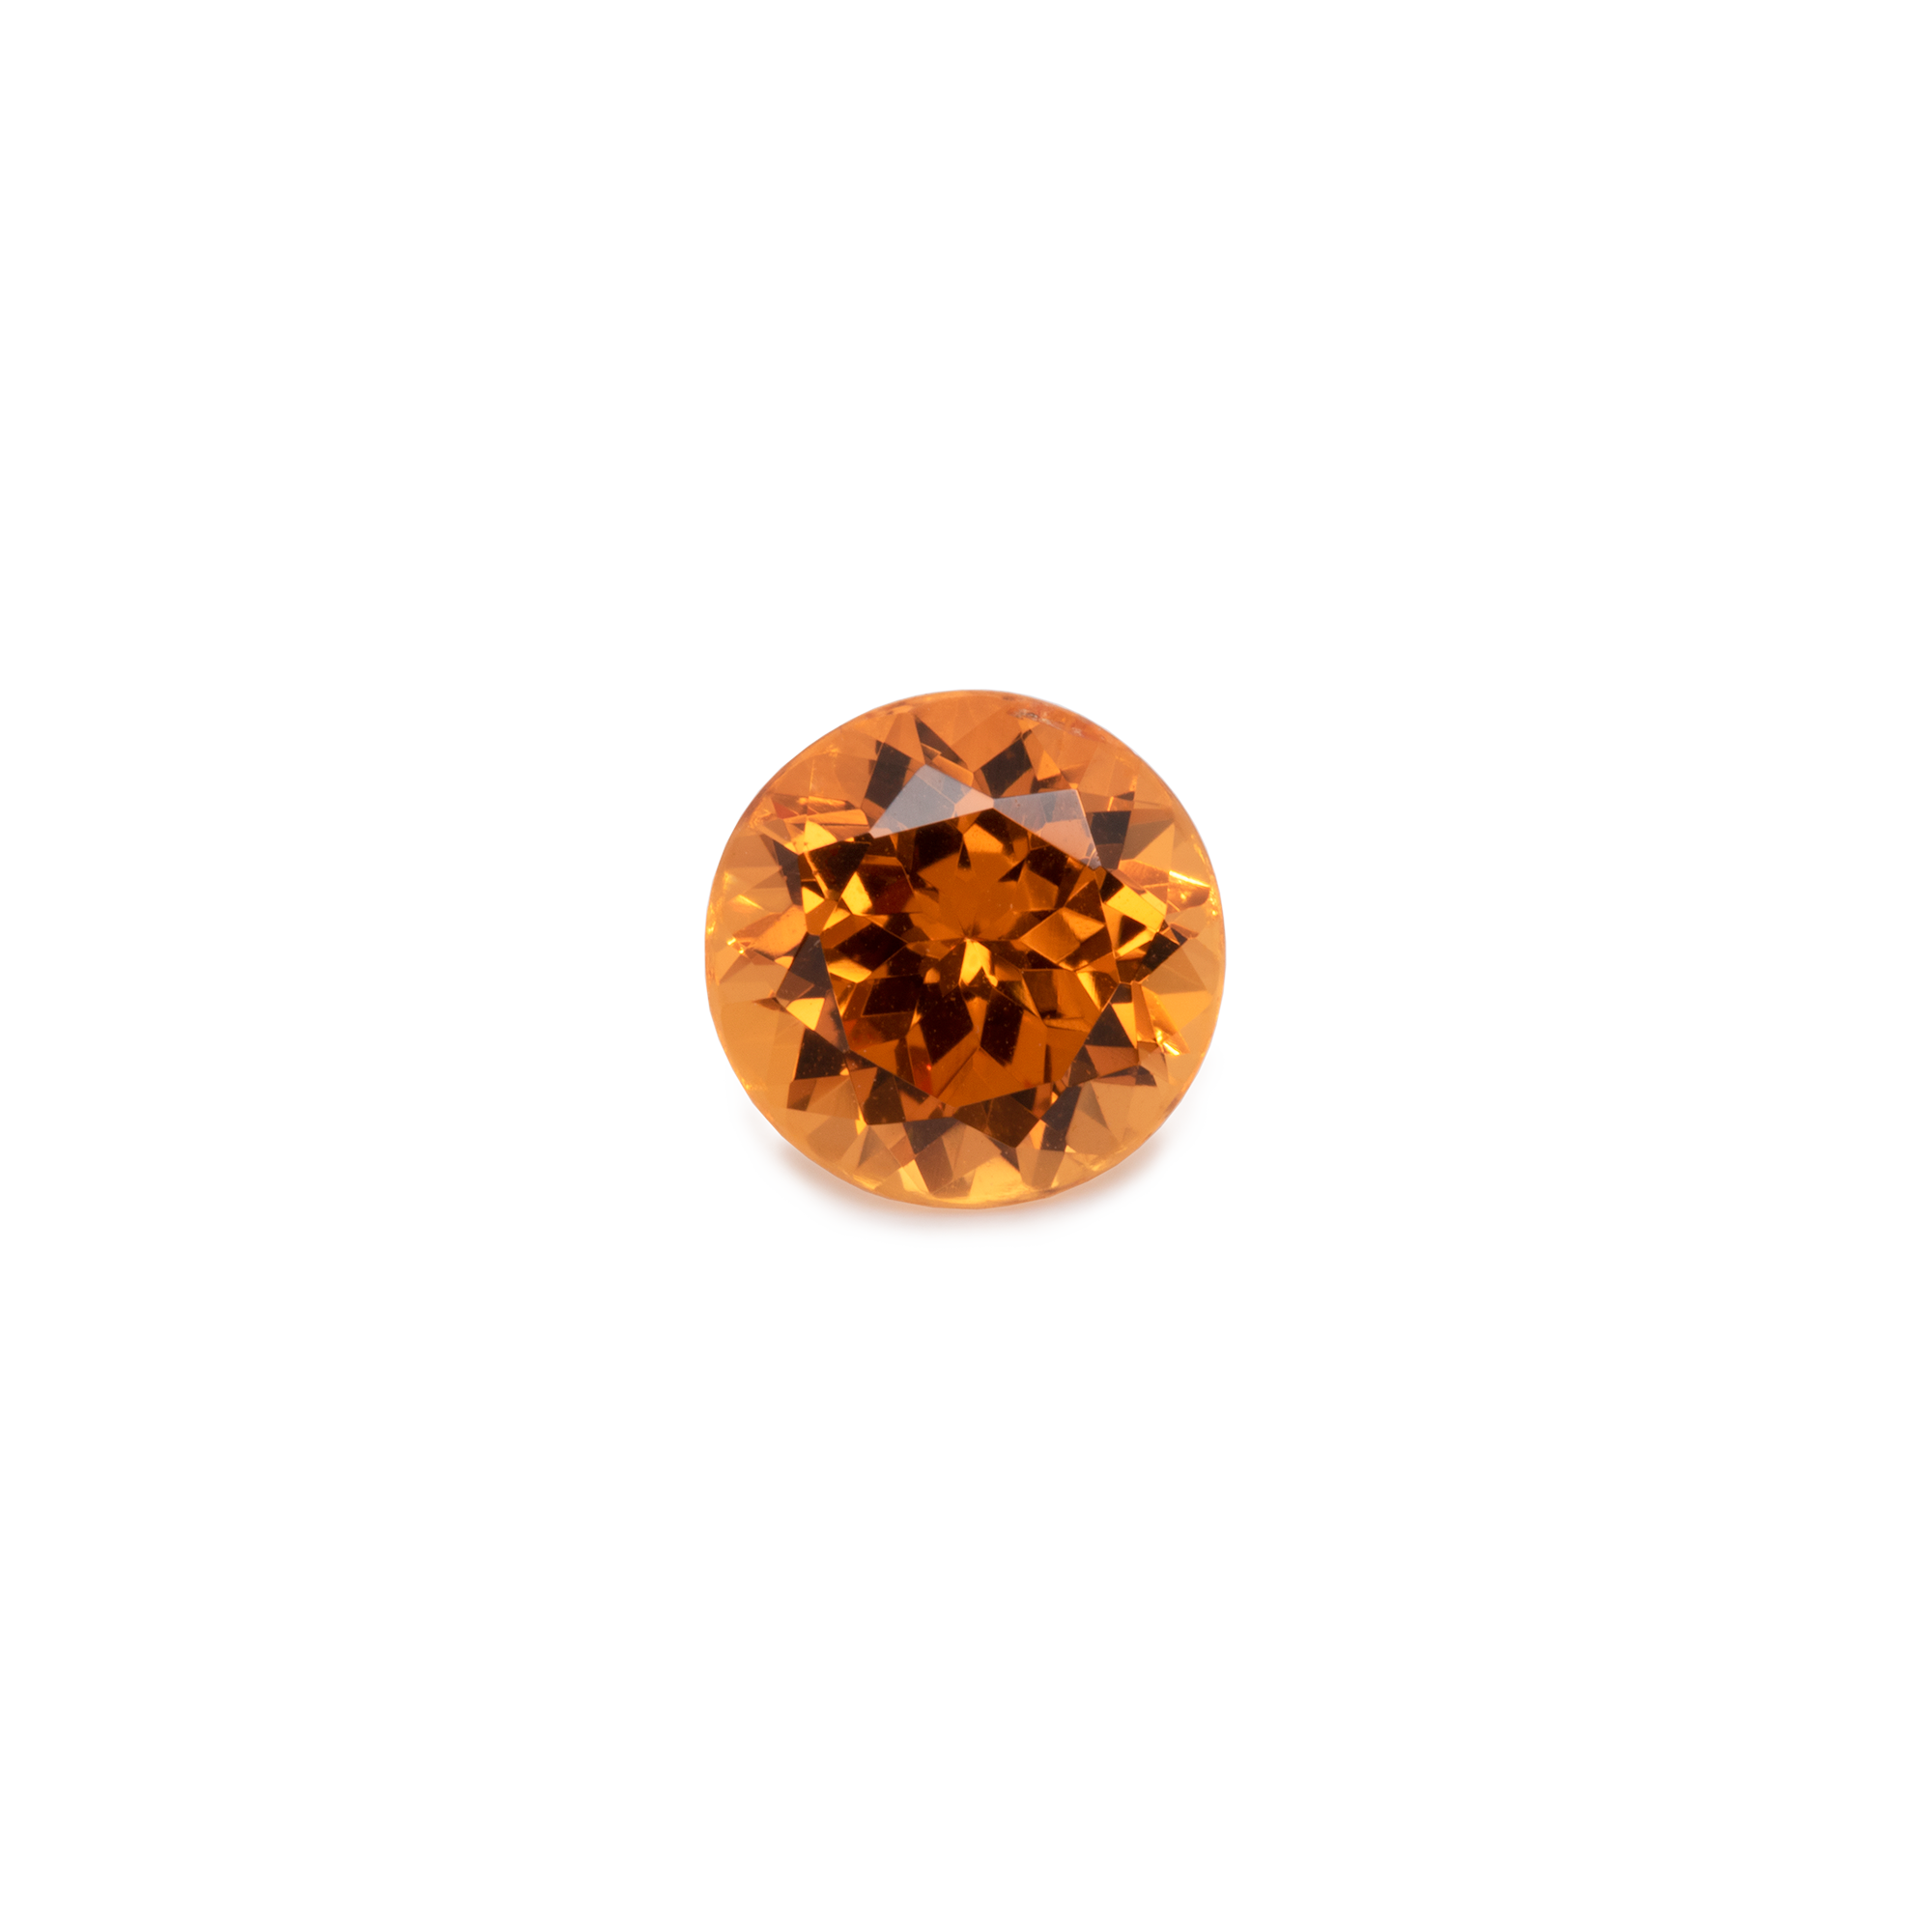 Mandarin Granat - orange, rund, 6x6 mm, 1-1,15 cts, Nr. MG90001